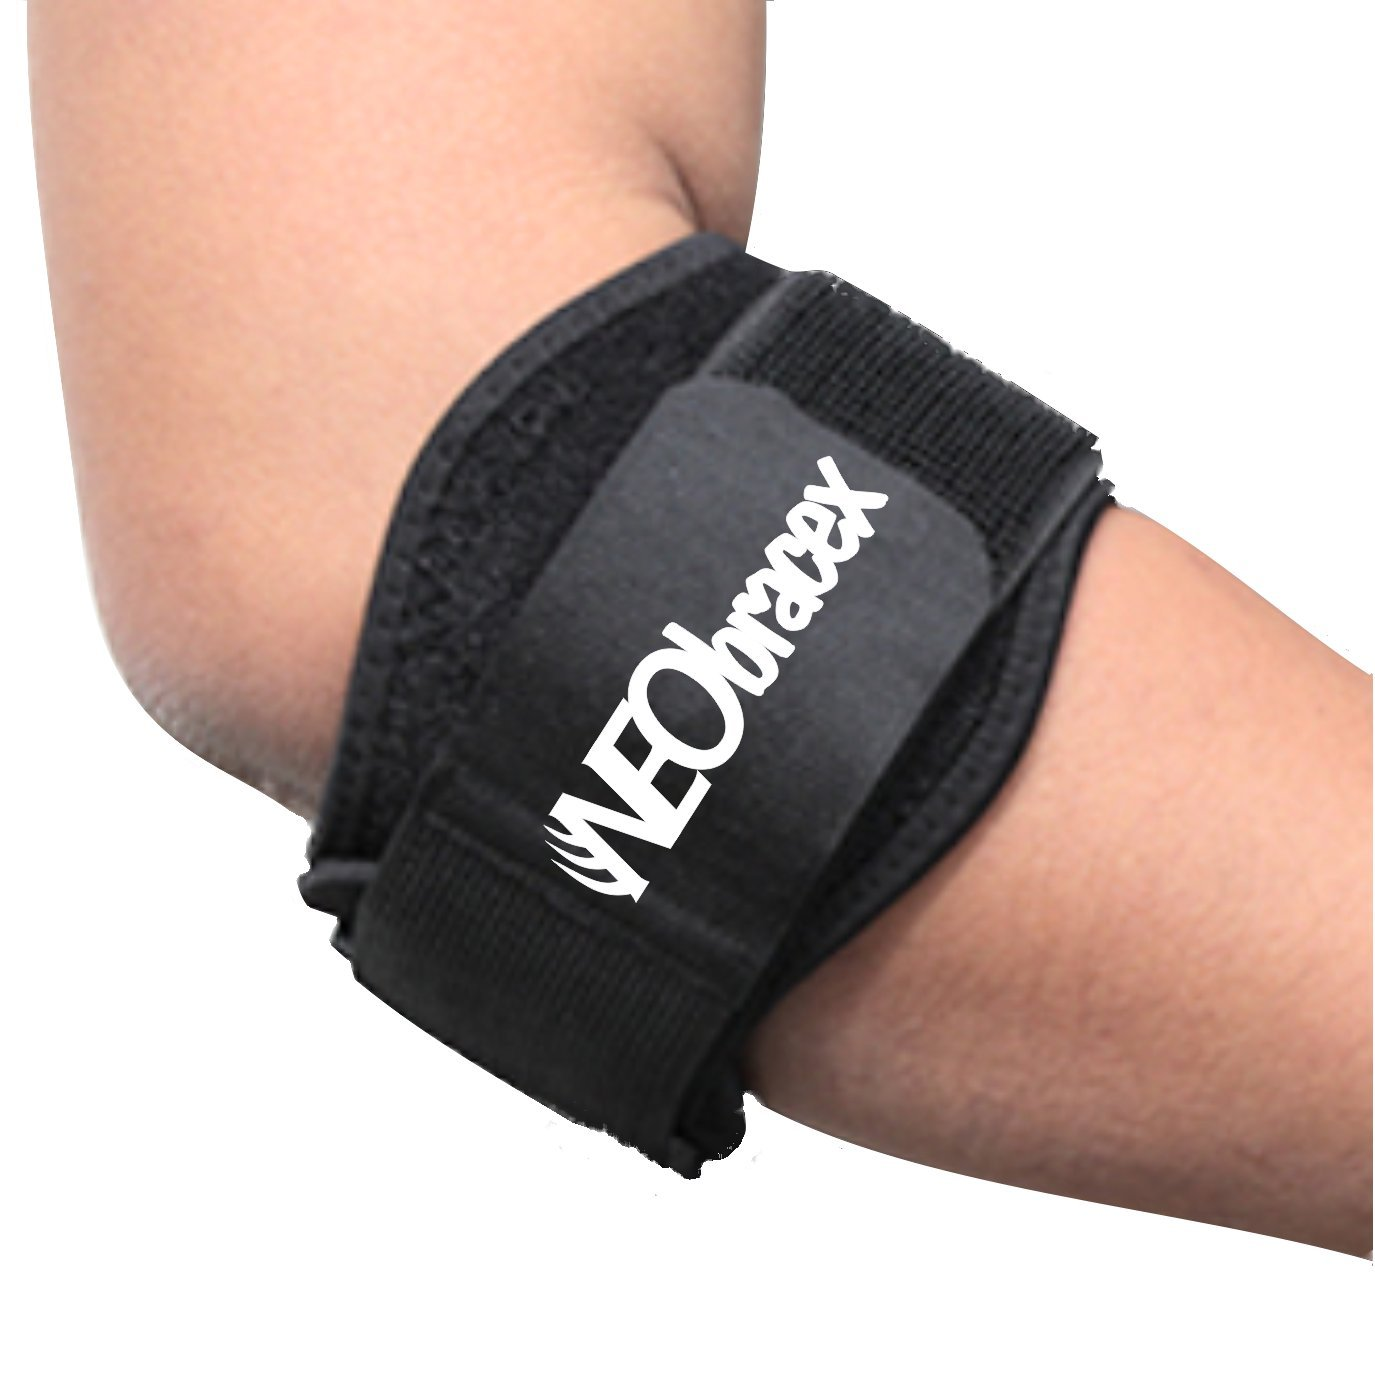 NEObracex Tennis Elbow Brace Forearm & Elbow Pain Relief for Golfers, Tennis, Baseball, Lateral Epicondylitis, Tendonitis, Ulnar Nerve Compression, Adjustable Support Band